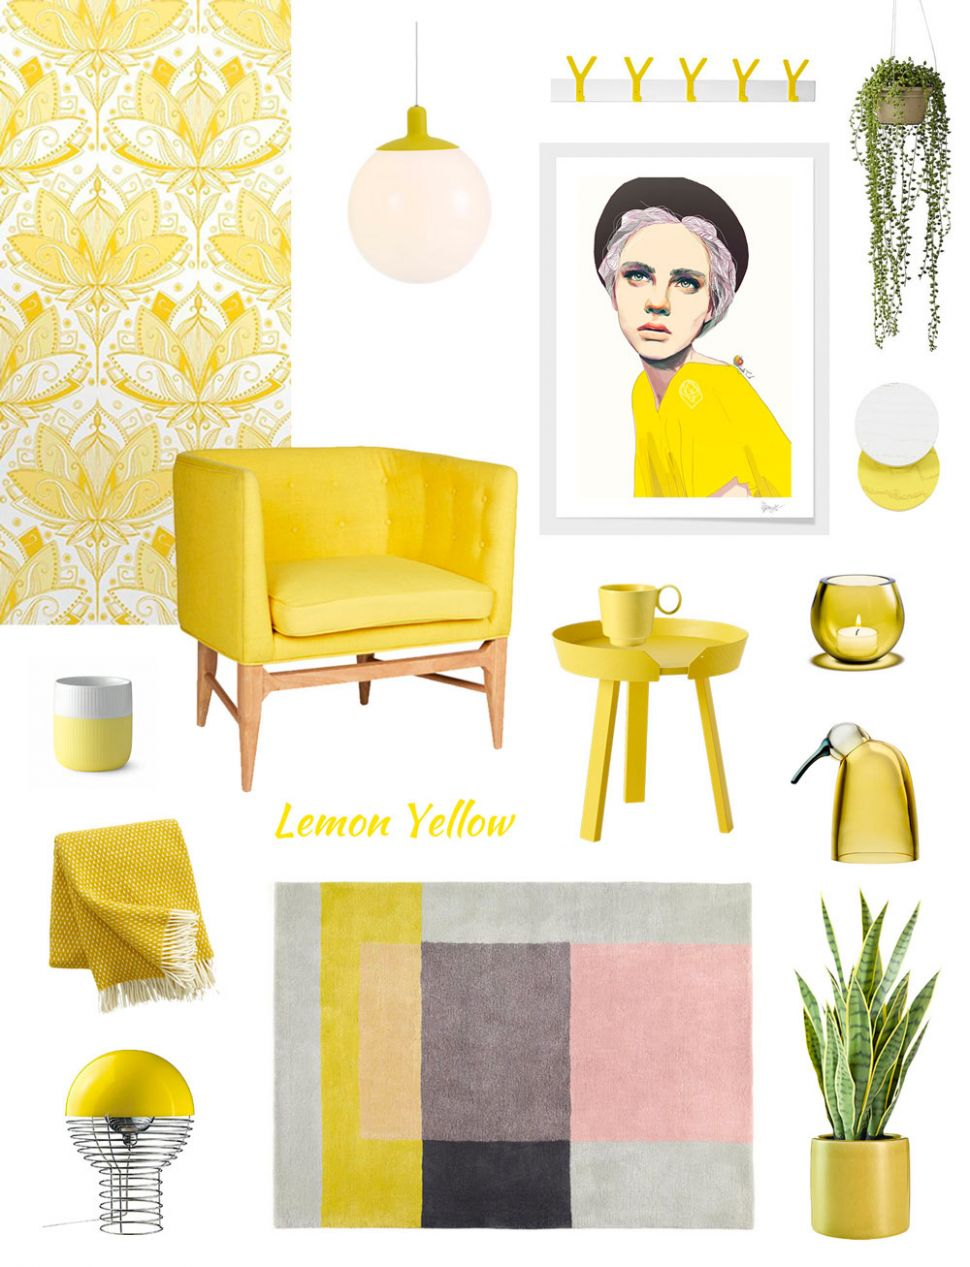 Summer Home Decor ideas on lemon yellow